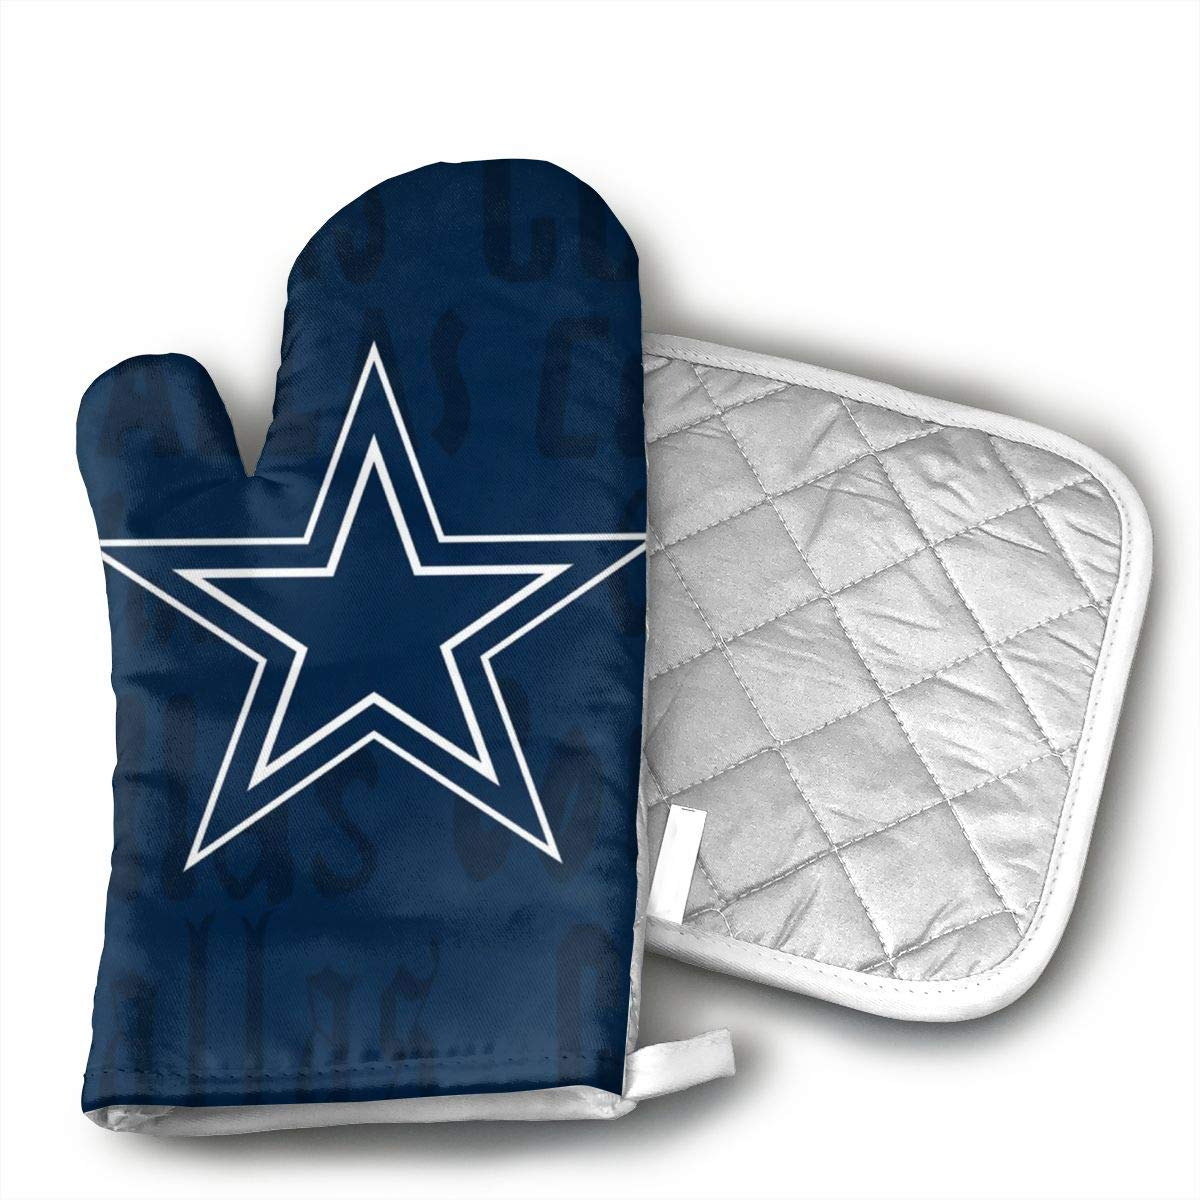 HGUIDHG Dallas Cowboys Oven Mitts+Insulated Square Mat,Heat Resistant Kitchen Gloves Soft Insulated Deep Pockets, Non-Slip Handles